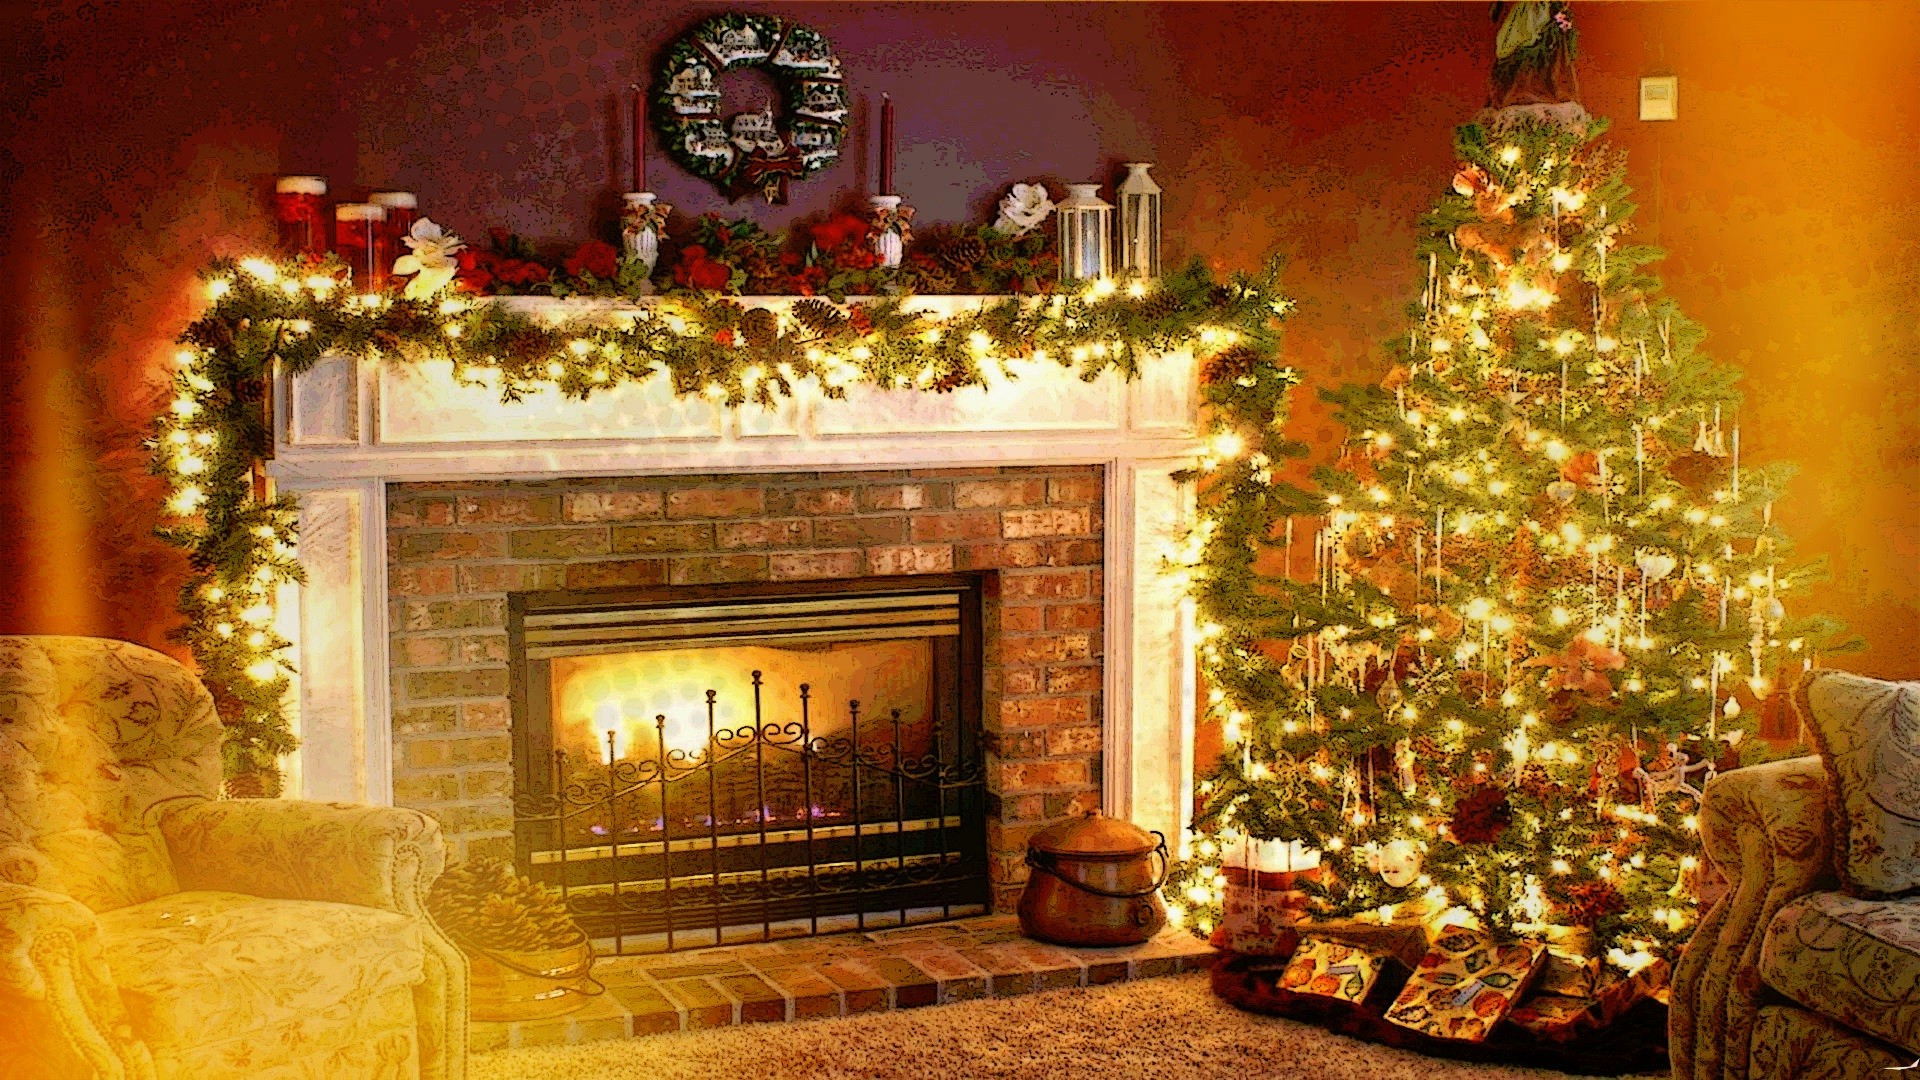 Christmas Holiday Fireplace Interiors Welcome Home Wallpapers 1920x1080